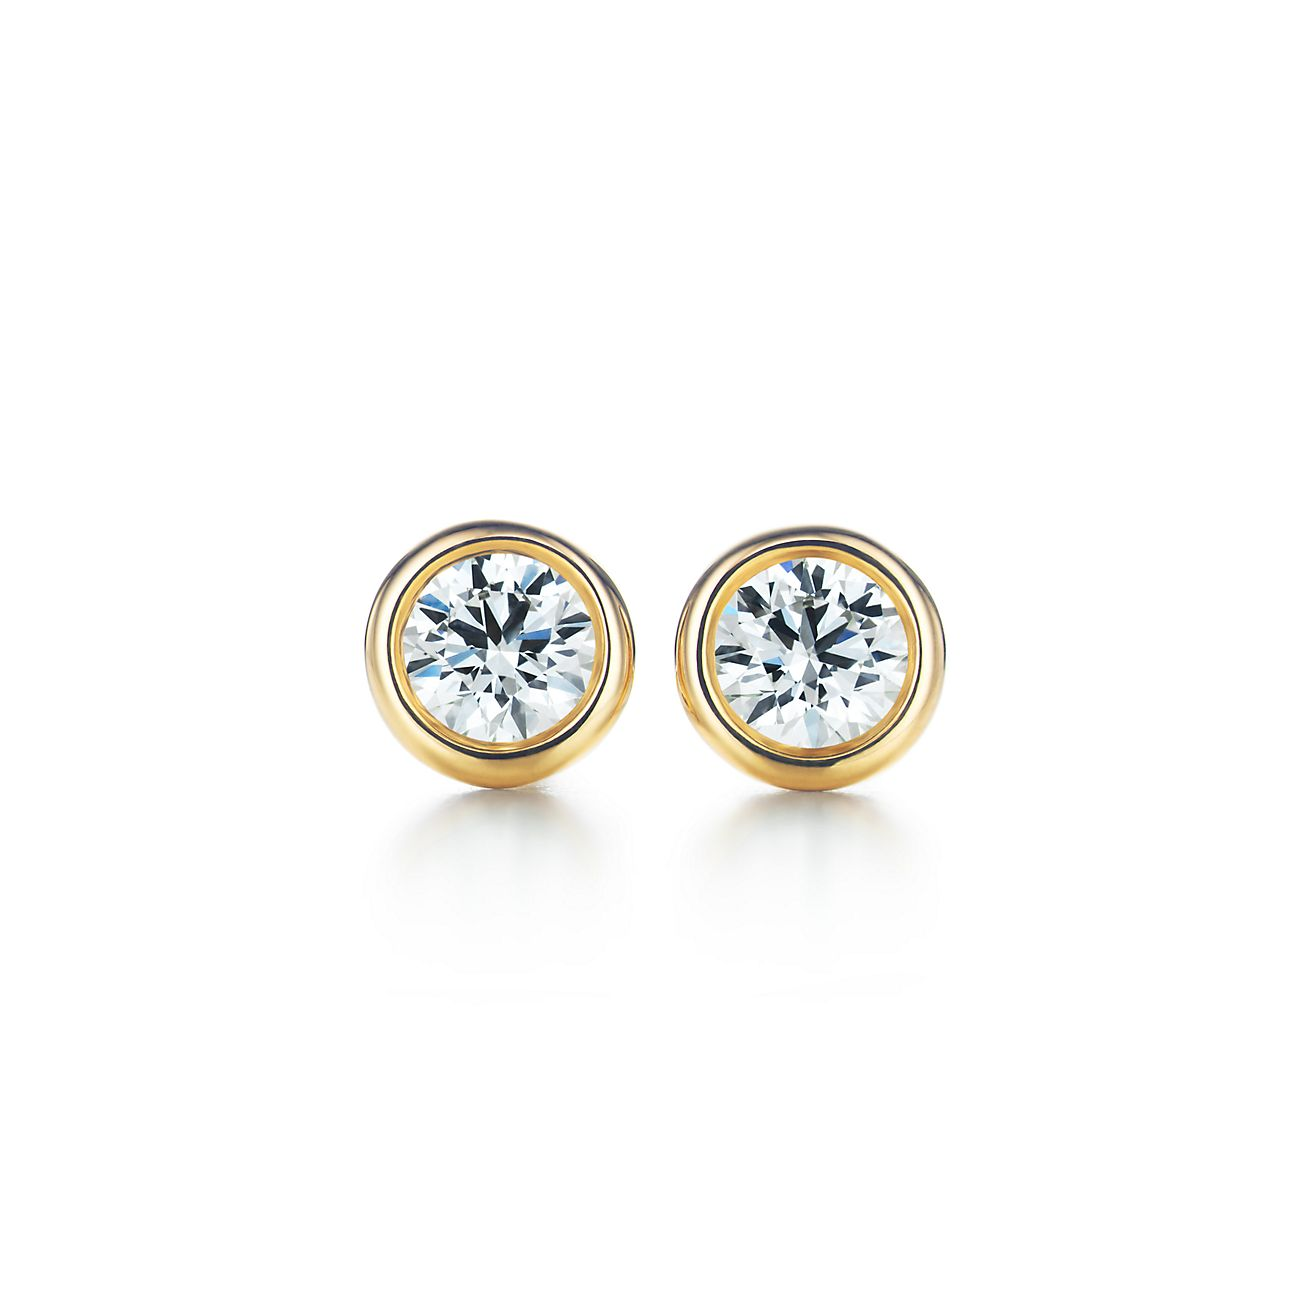 Elsa Peretti Diamonds by the Yard earrings in 18k gold - Size.28 Tiffany & Co. gkNCps